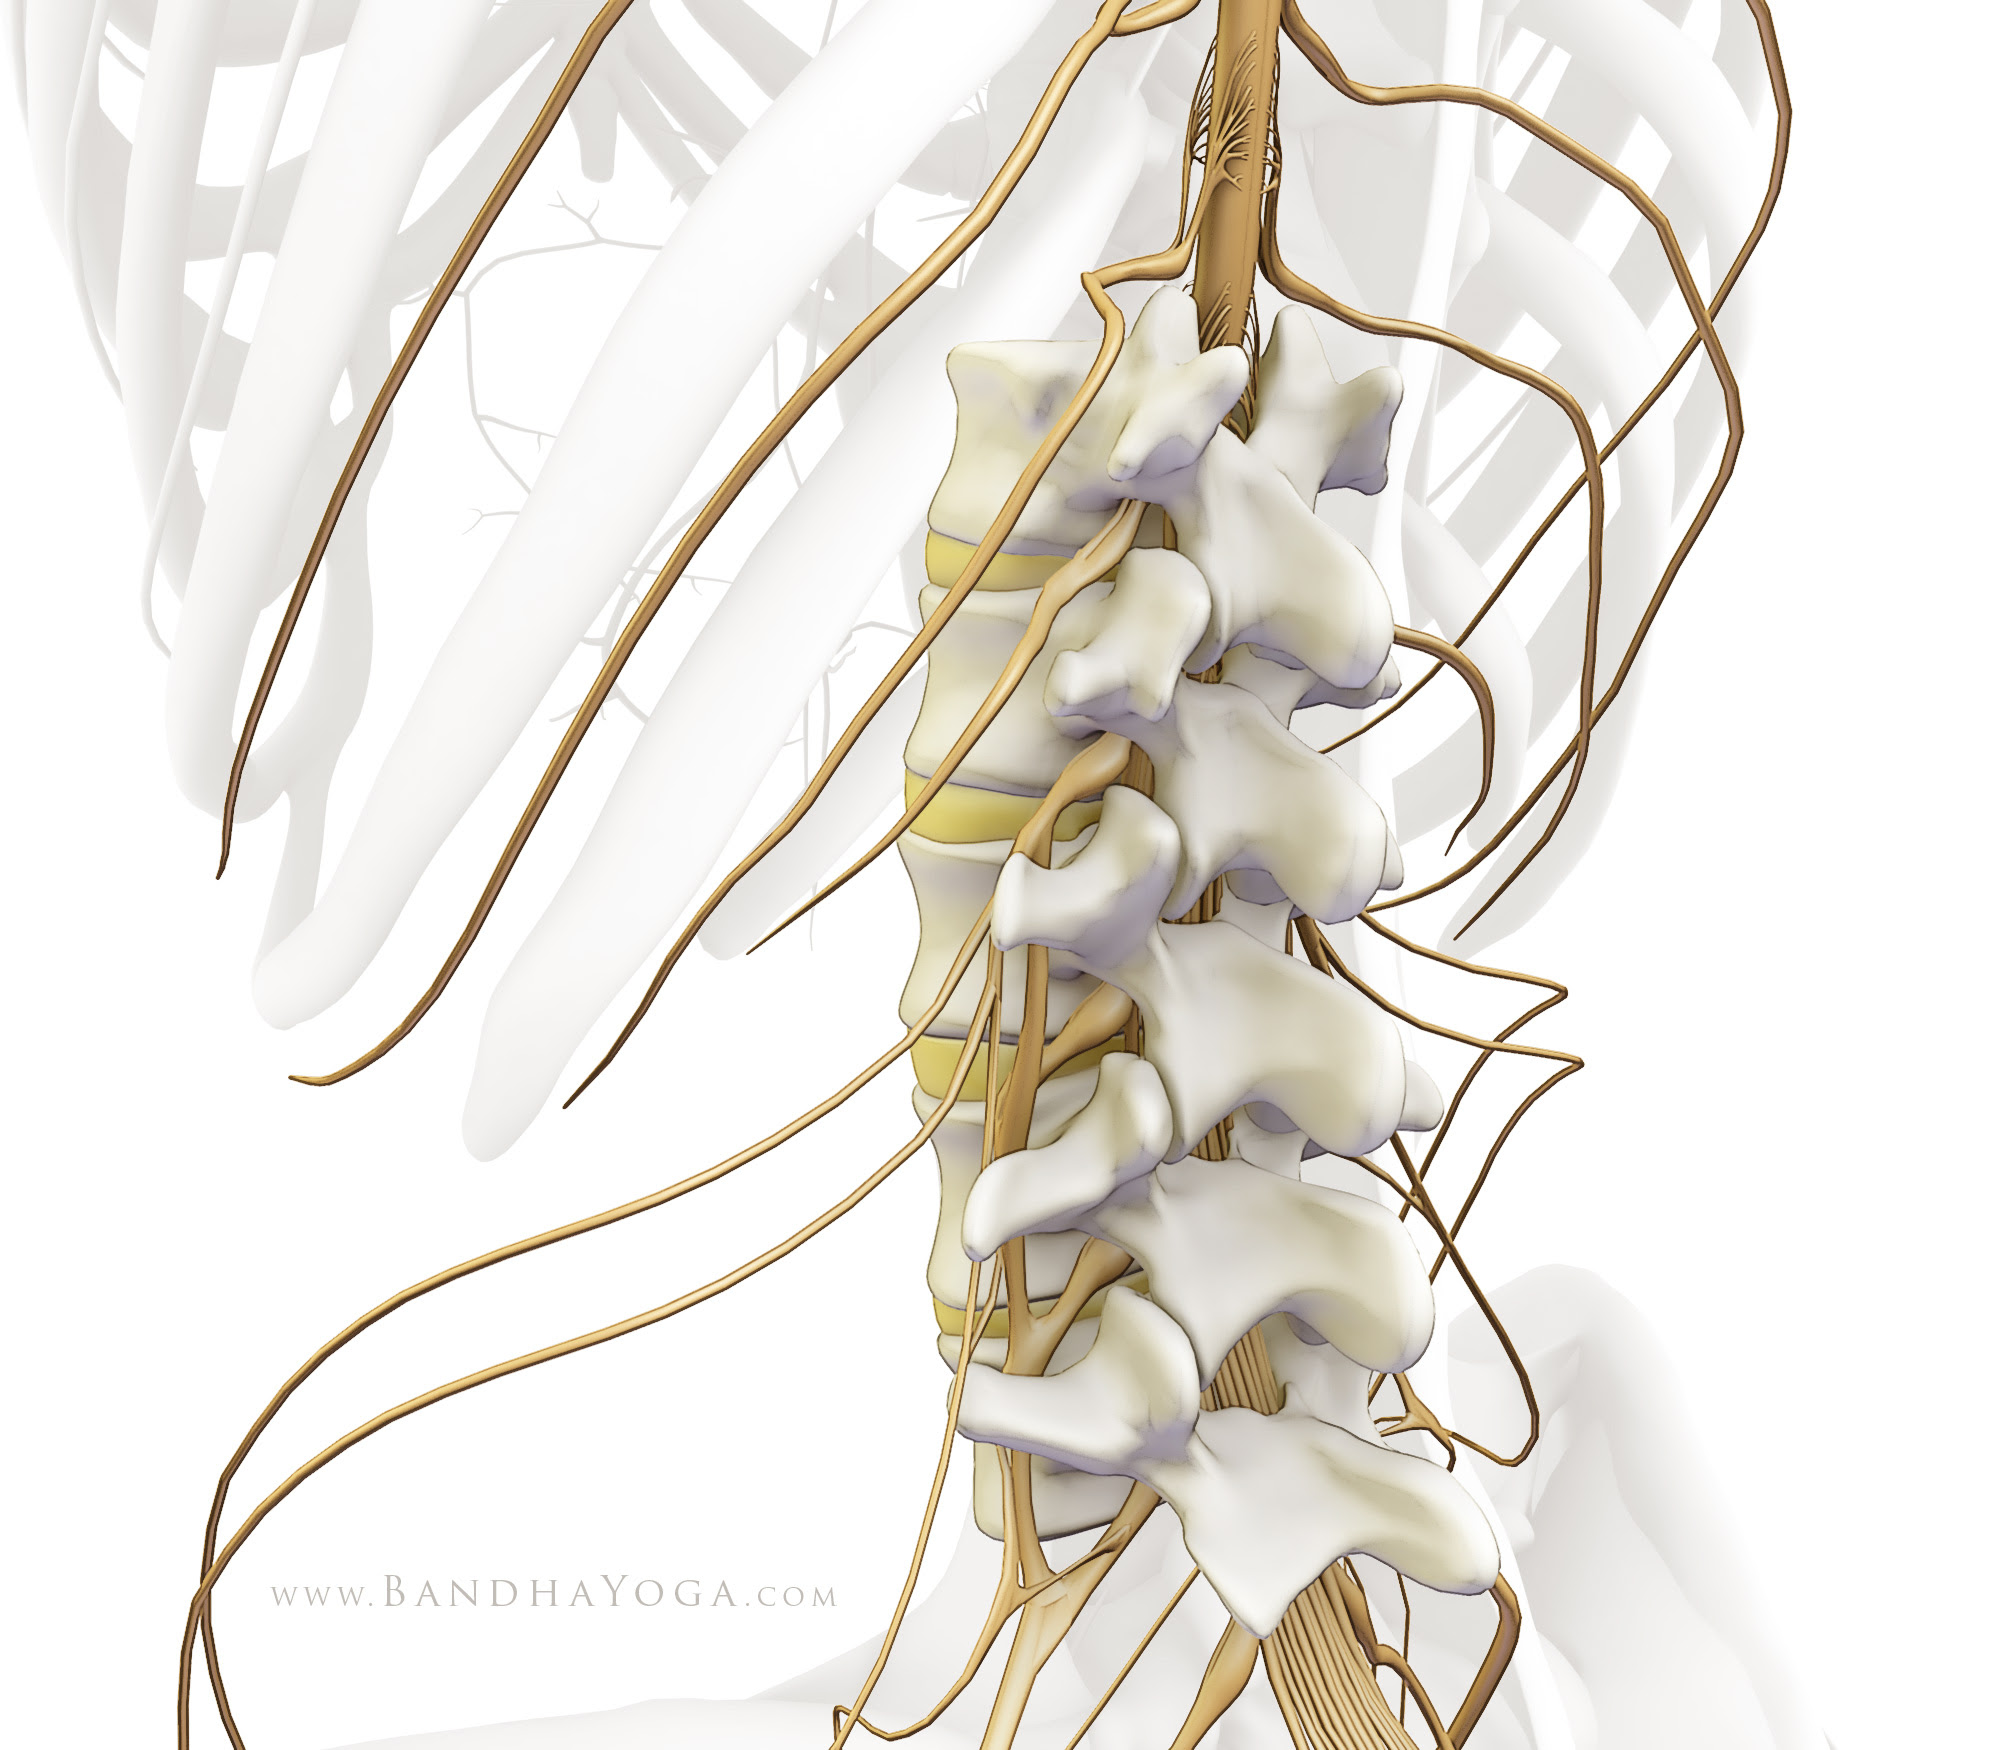 spinal cord and vertebral bodies